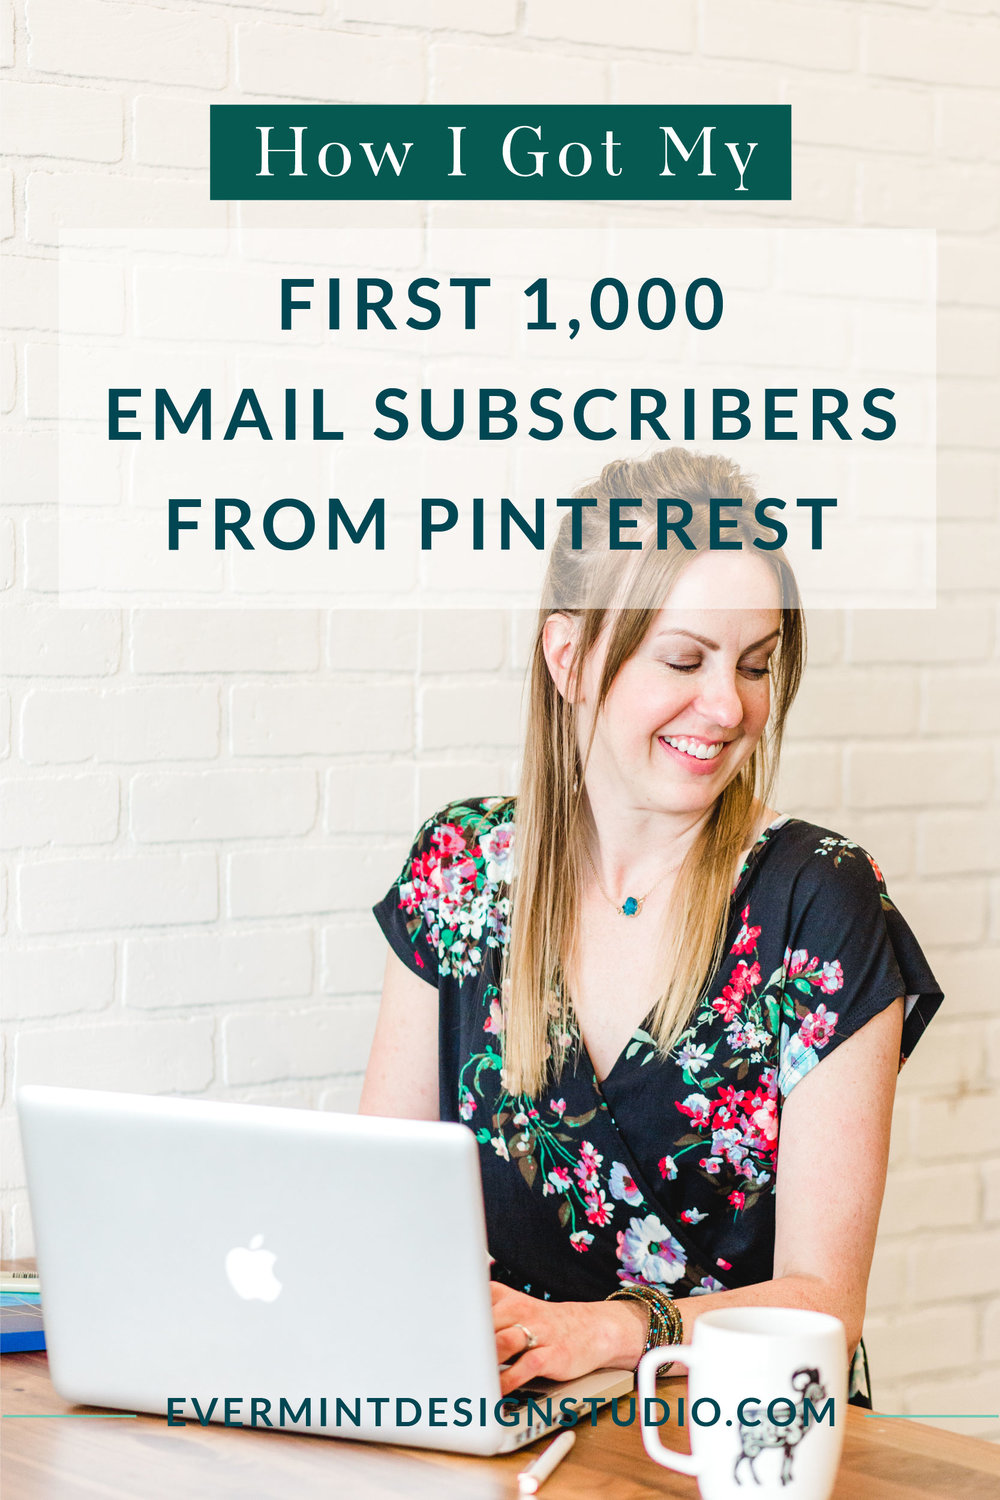 howIgotmyfirst1000emailsubscribers.jpg